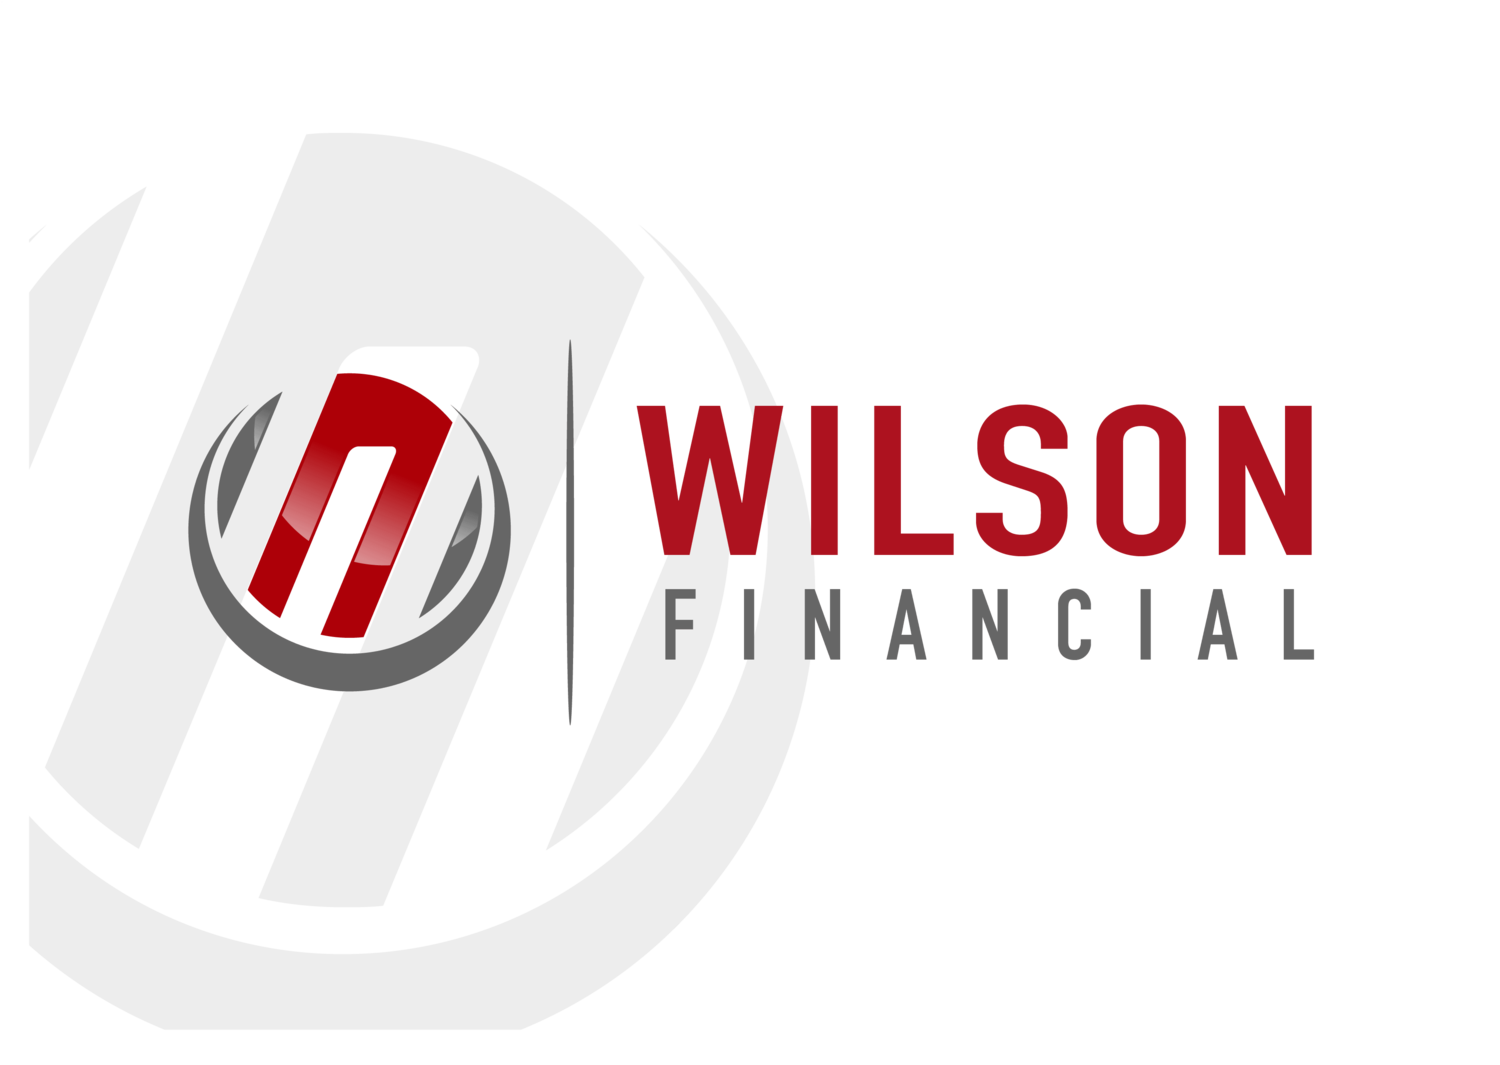 Wilson Financial - Wealth Management and Financial Planning